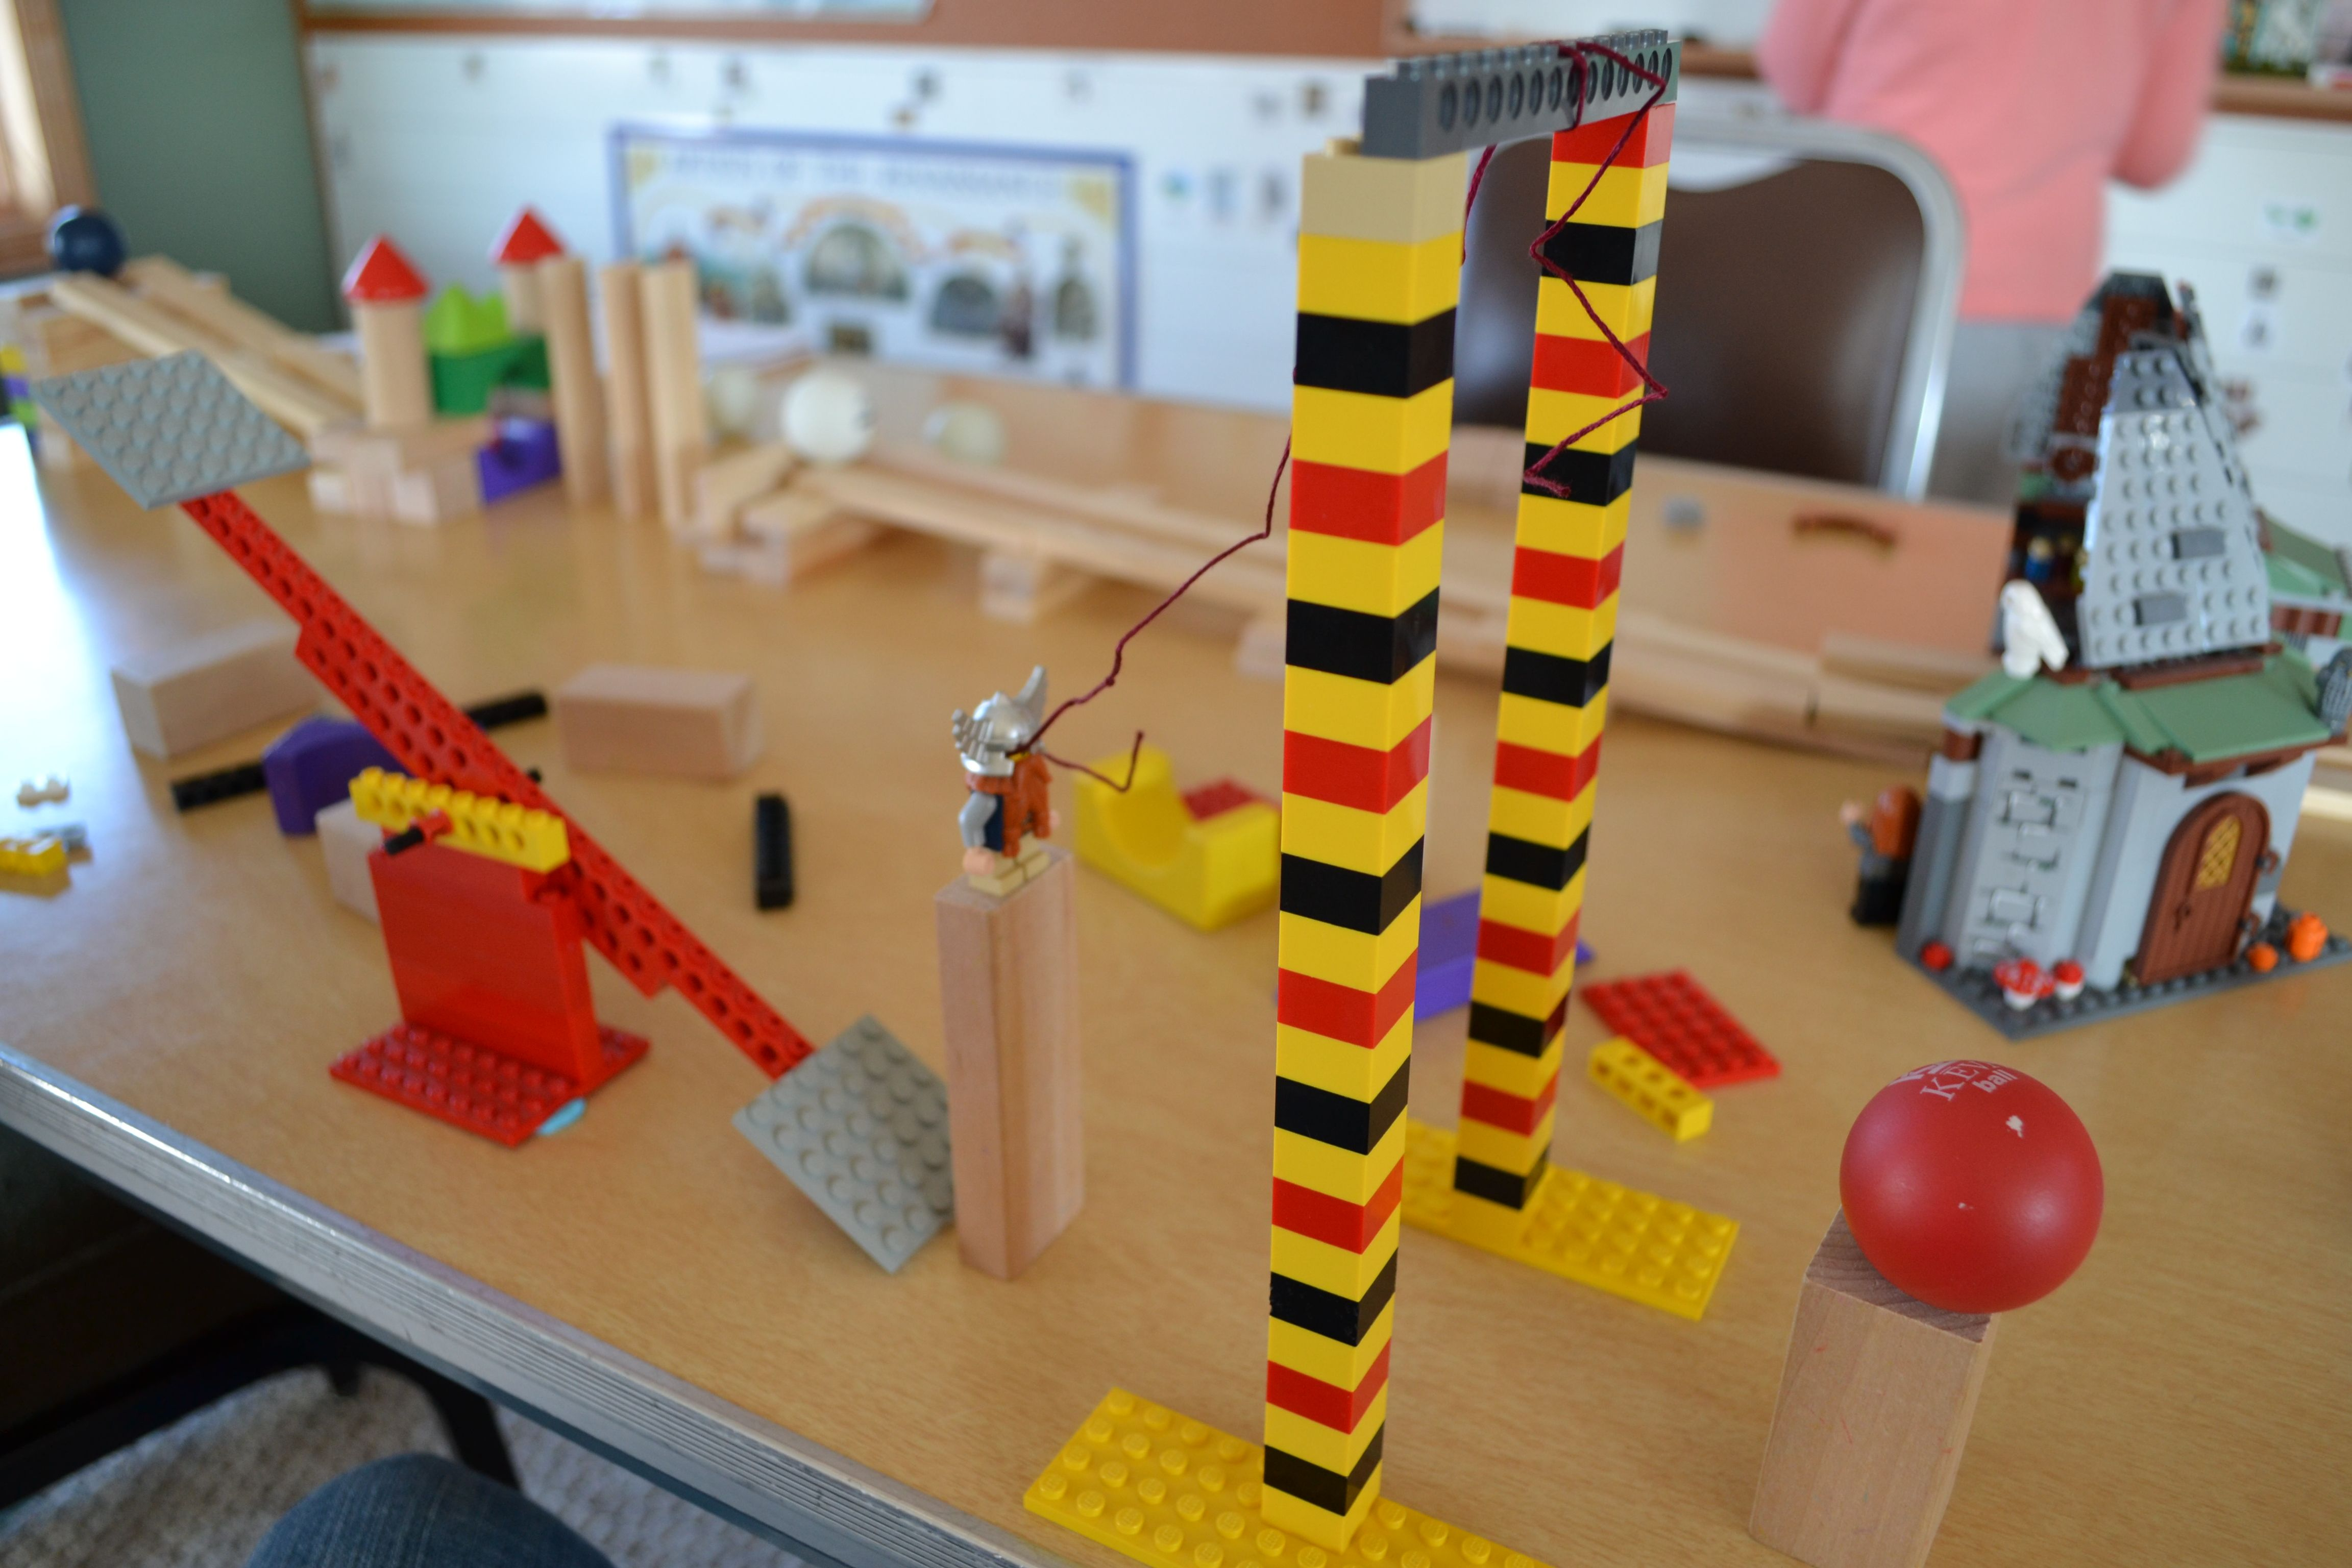 Simple machines project ideas - Rube Goldberg Projects Simple Machines